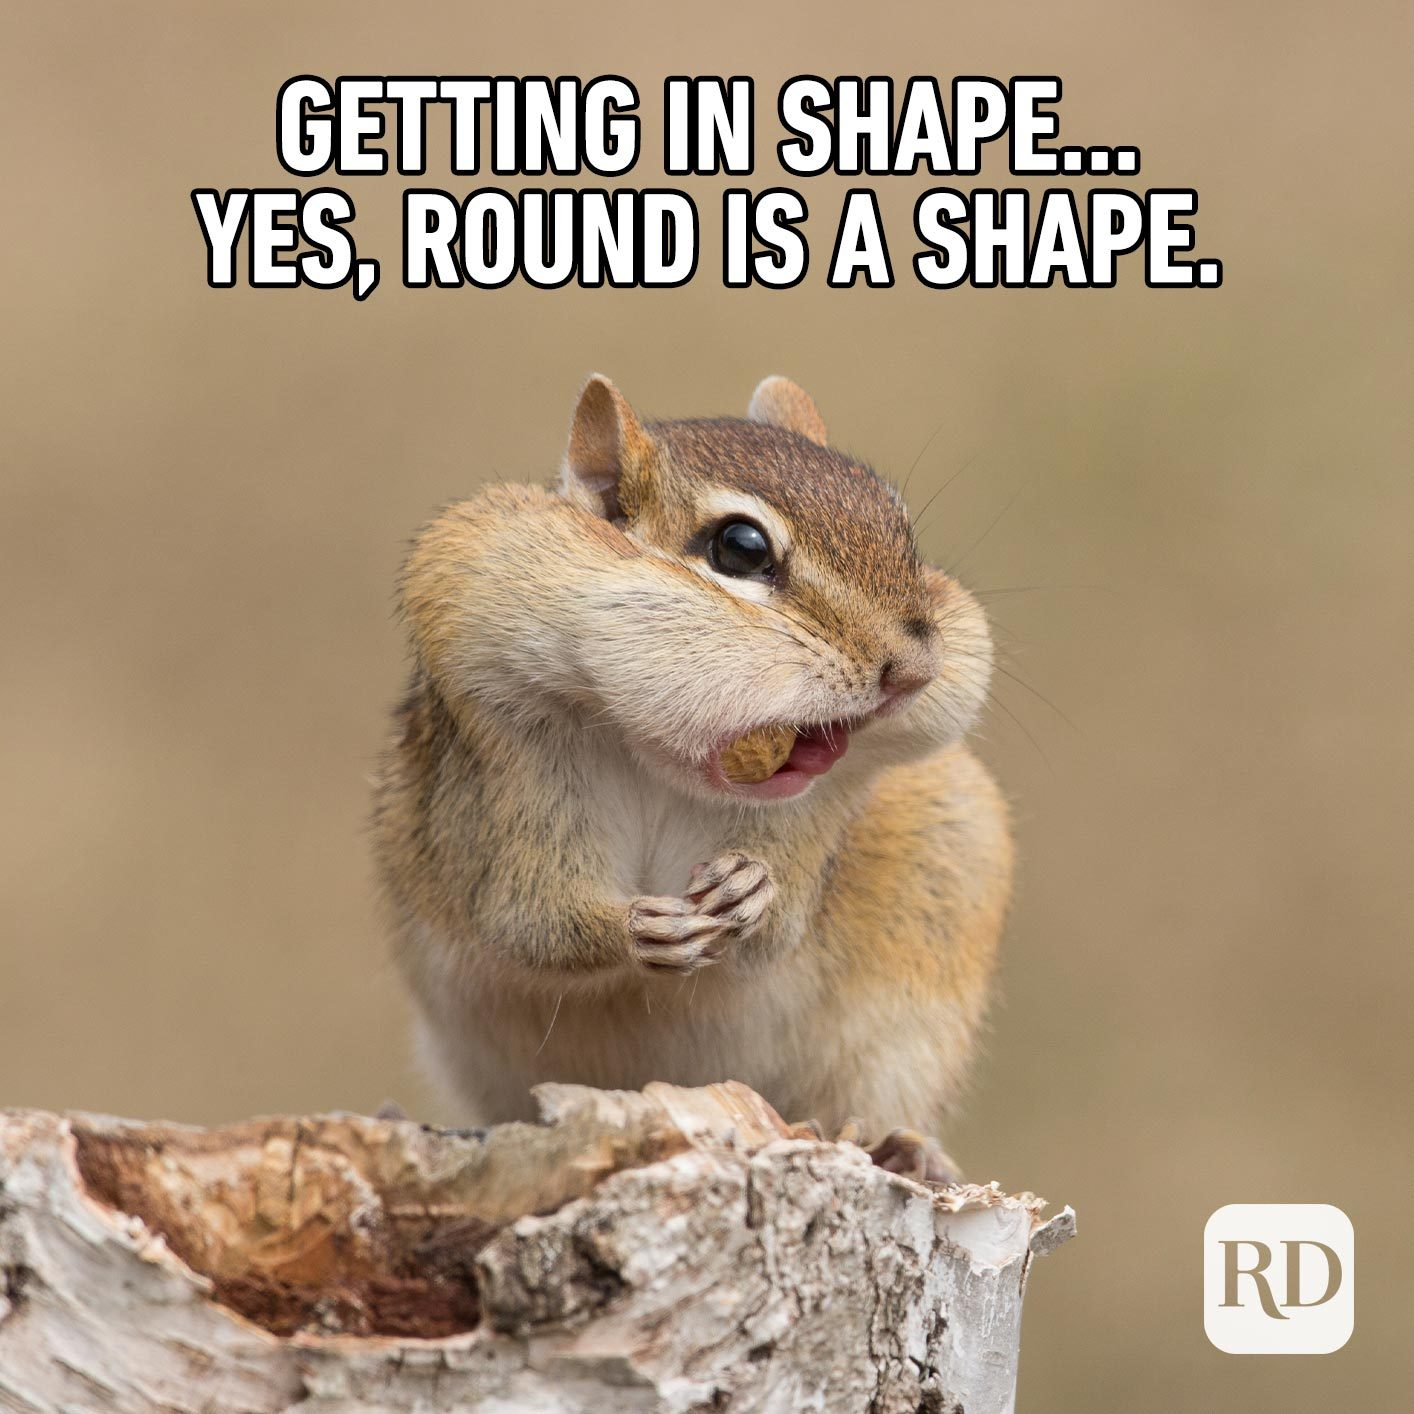 Chipmunk eating nuts. Meme text: Getting in shape… yes, round is a shape